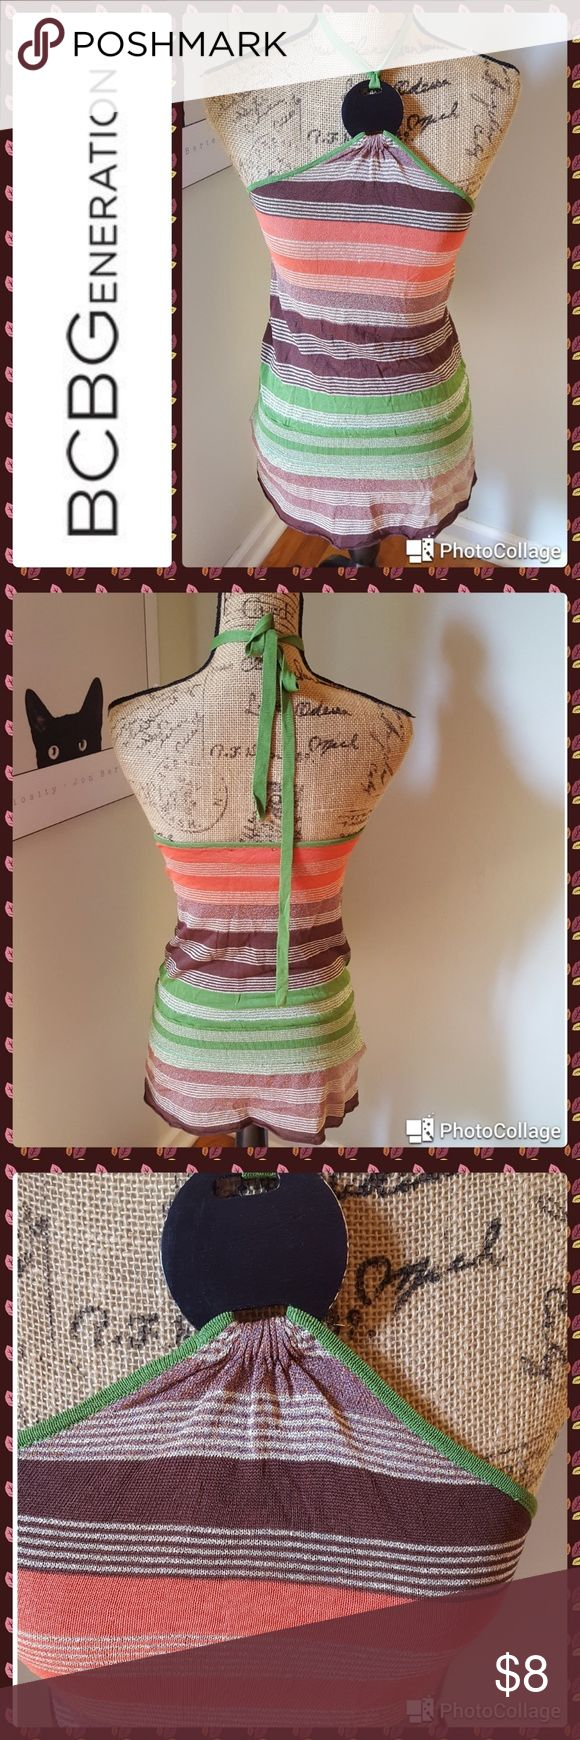 """🌞SUMMER SALE! NOTHING OVER $15! NO OFFERS! In great condition.  BCBGENERATION top. Orange, brown and green rayon blend halter style. Wooden disc on front. Bust 34"""", length 27"""". BCBGeneration Tops"""